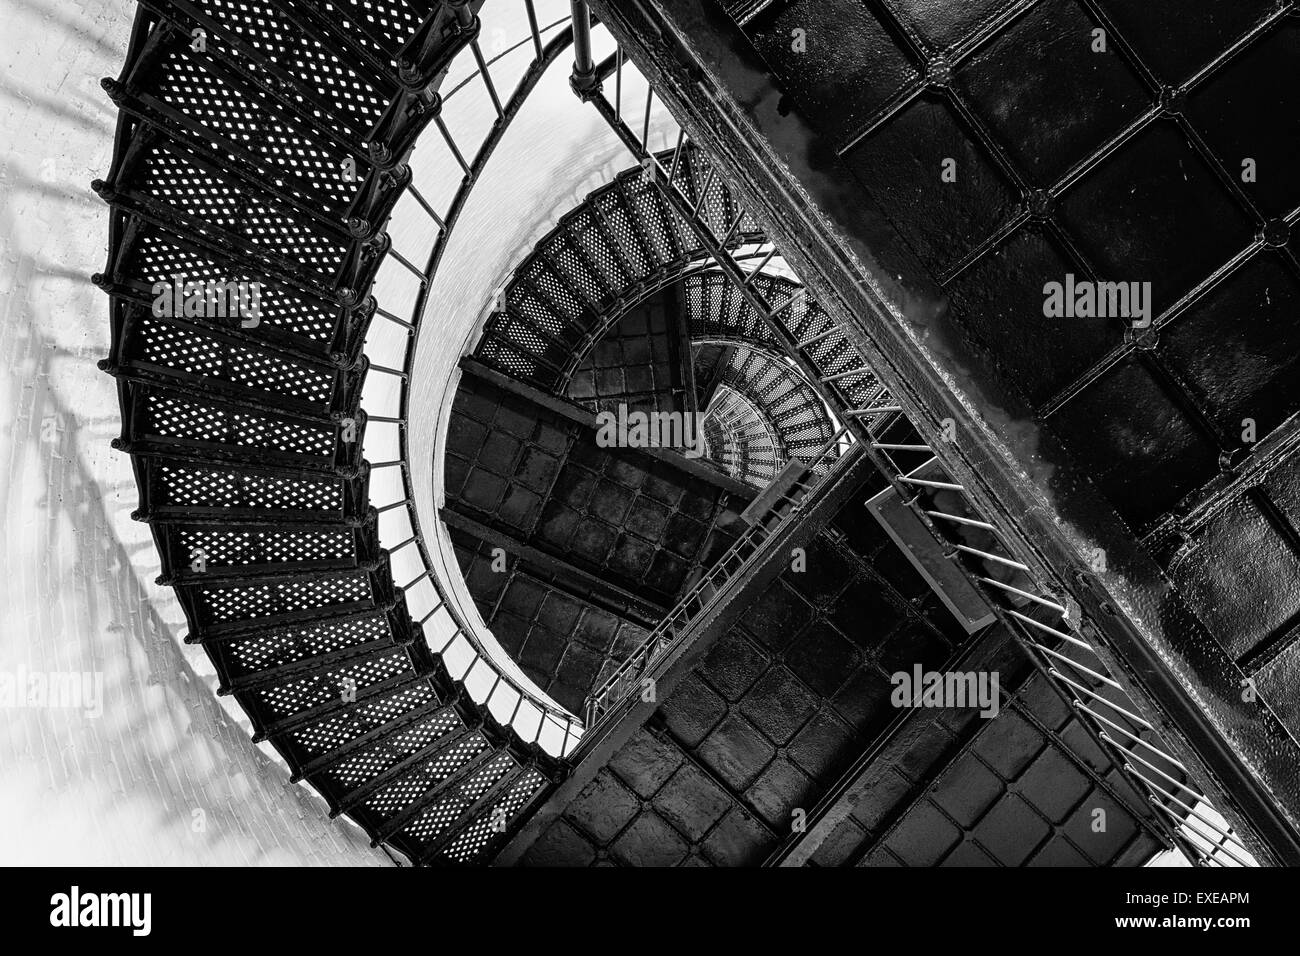 Hunting Island Lighthouse Staircase from below in black and white, Hunting Island, South Carolina - Stock Image